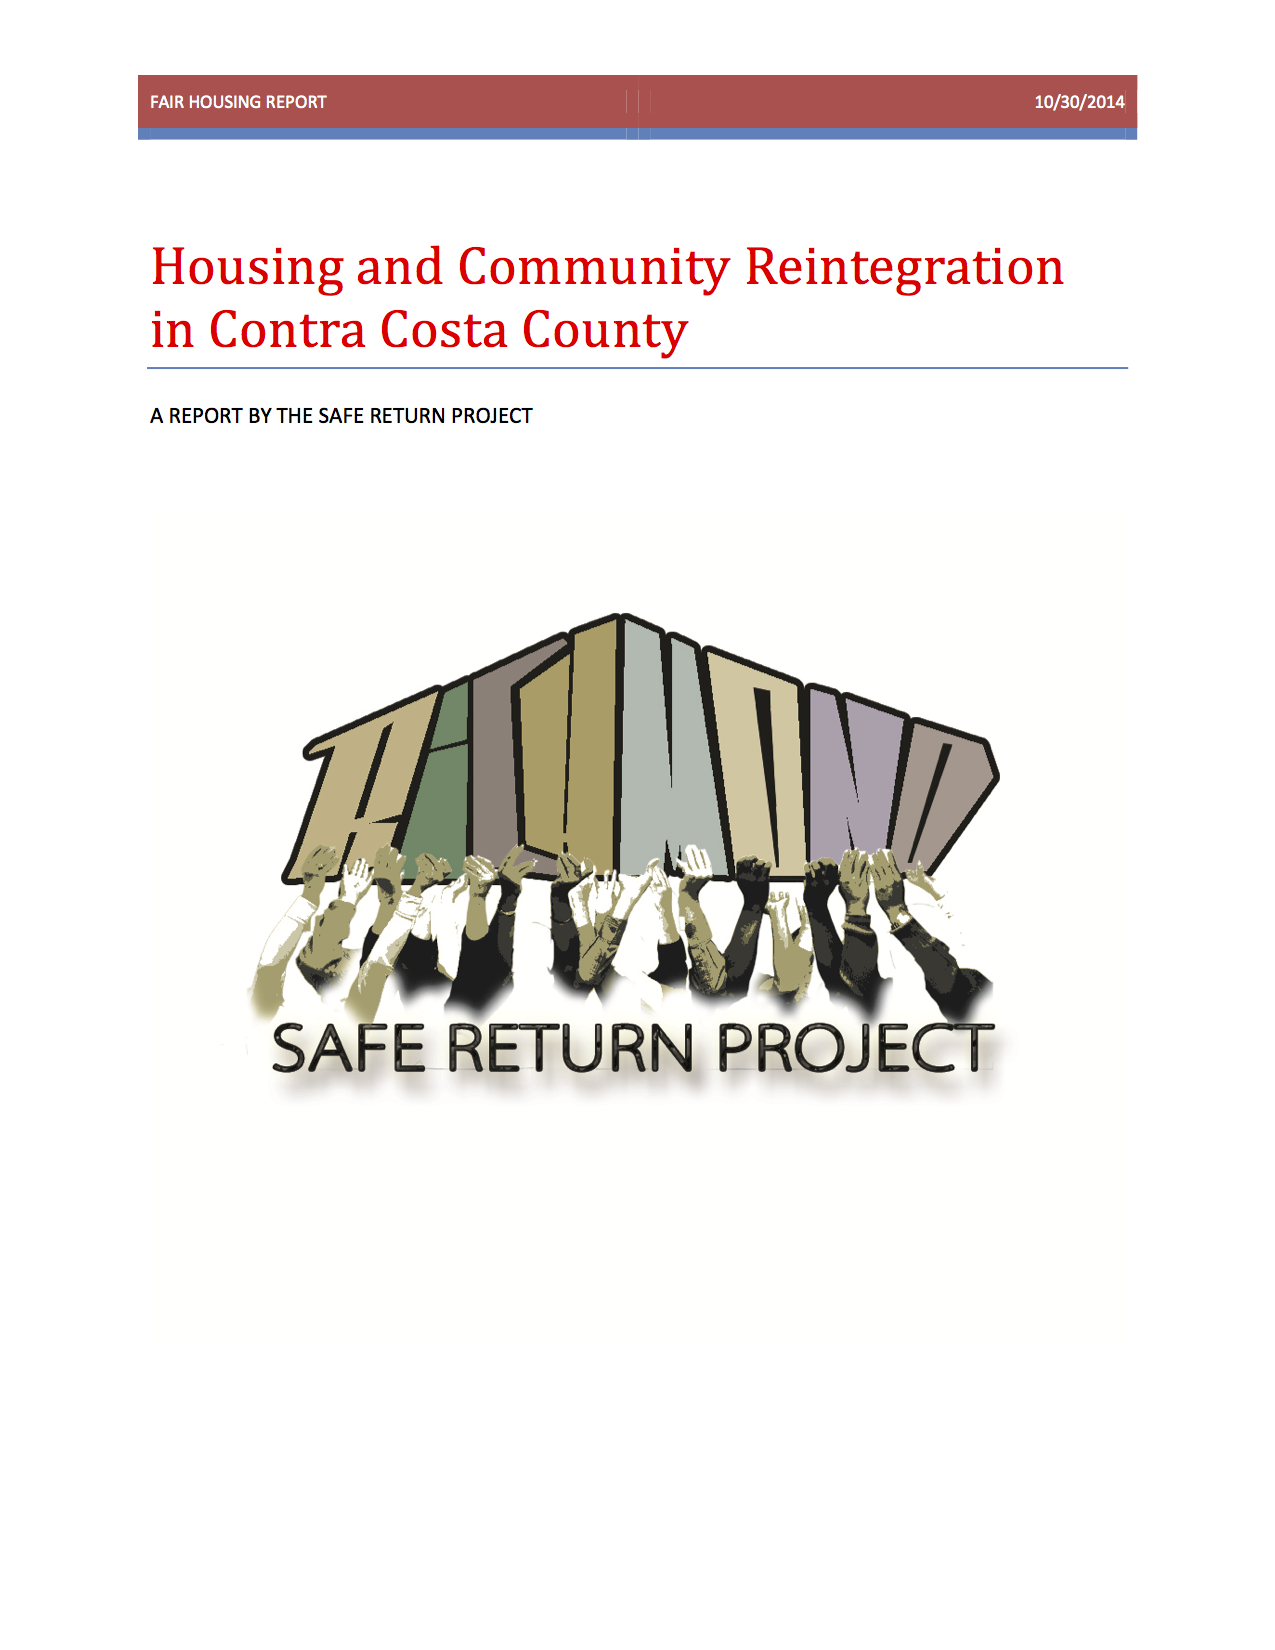 Housing and Community Reintegration in Contra Costa County FINAL (1).png